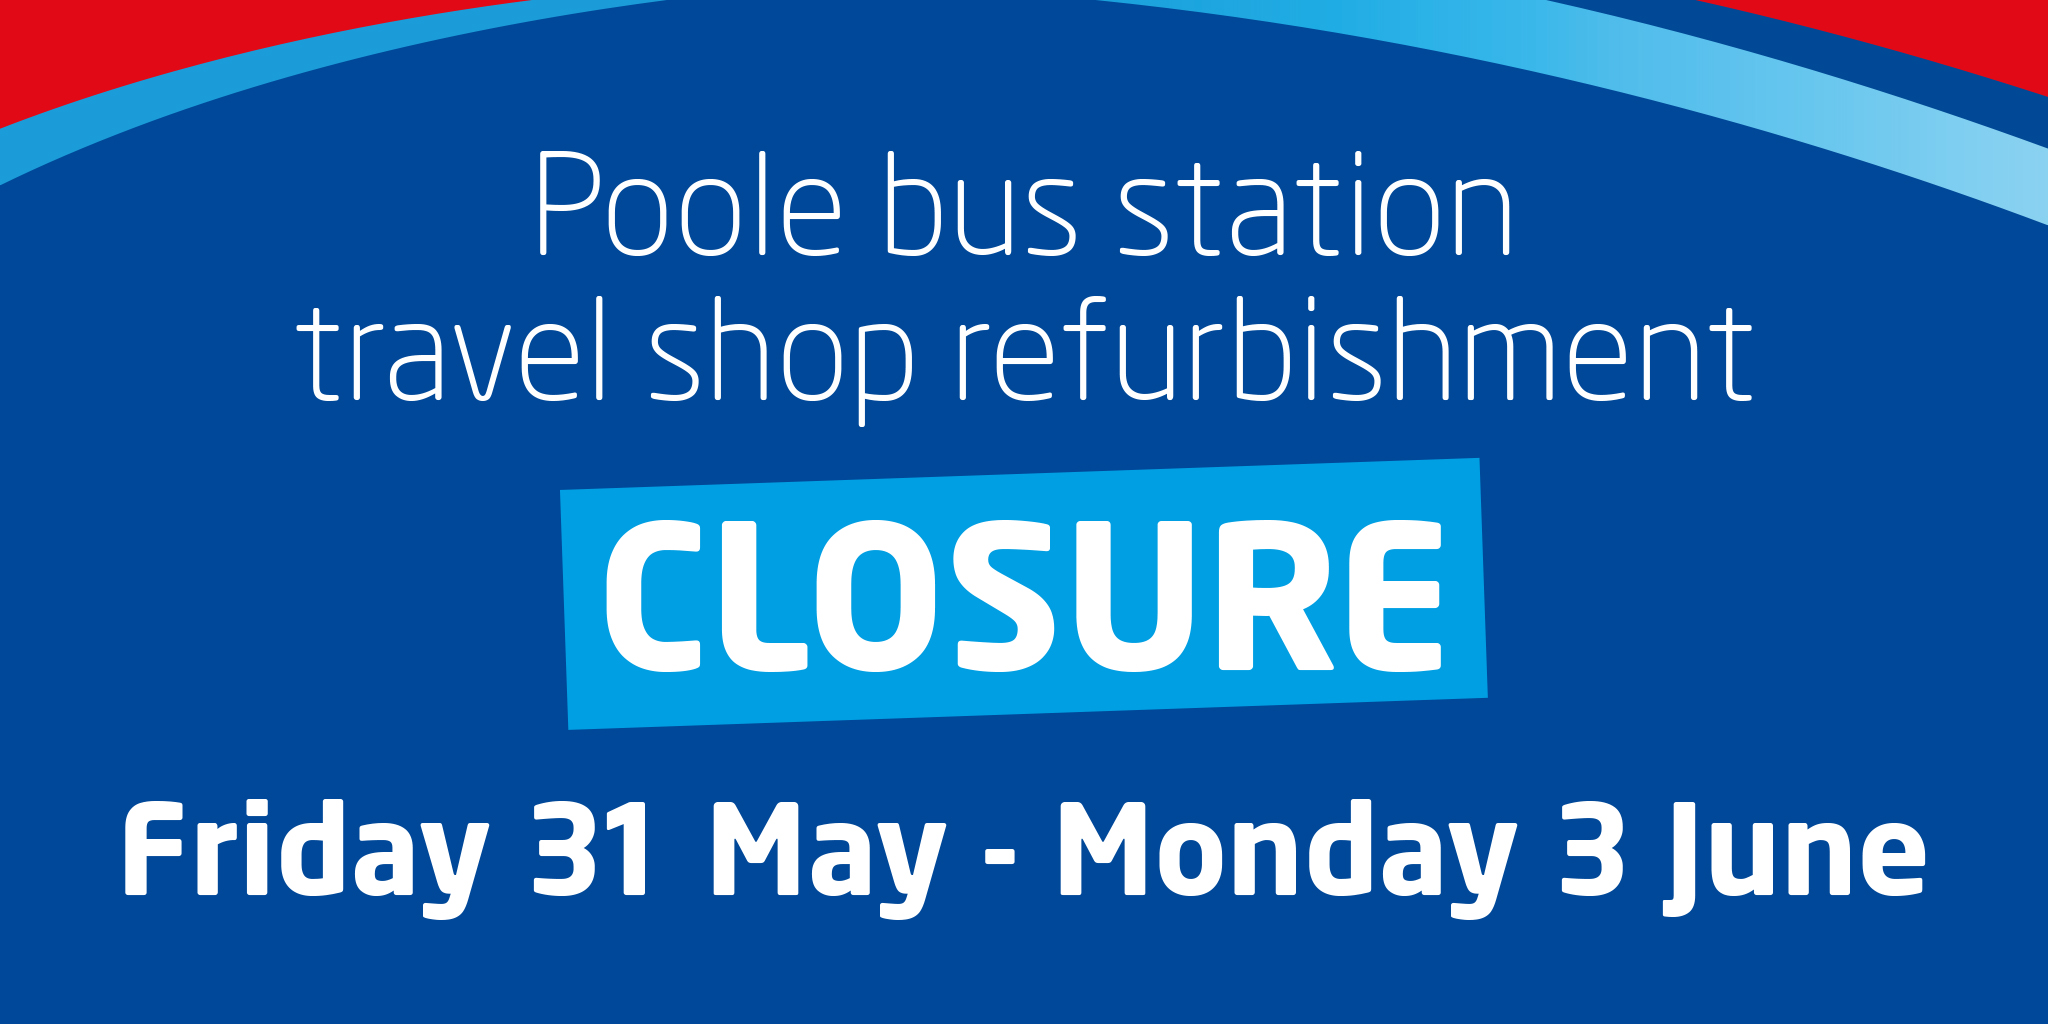 Image reading 'Poole bus station travel refurbishment closure Friday 31 May - Sunday 2 June'